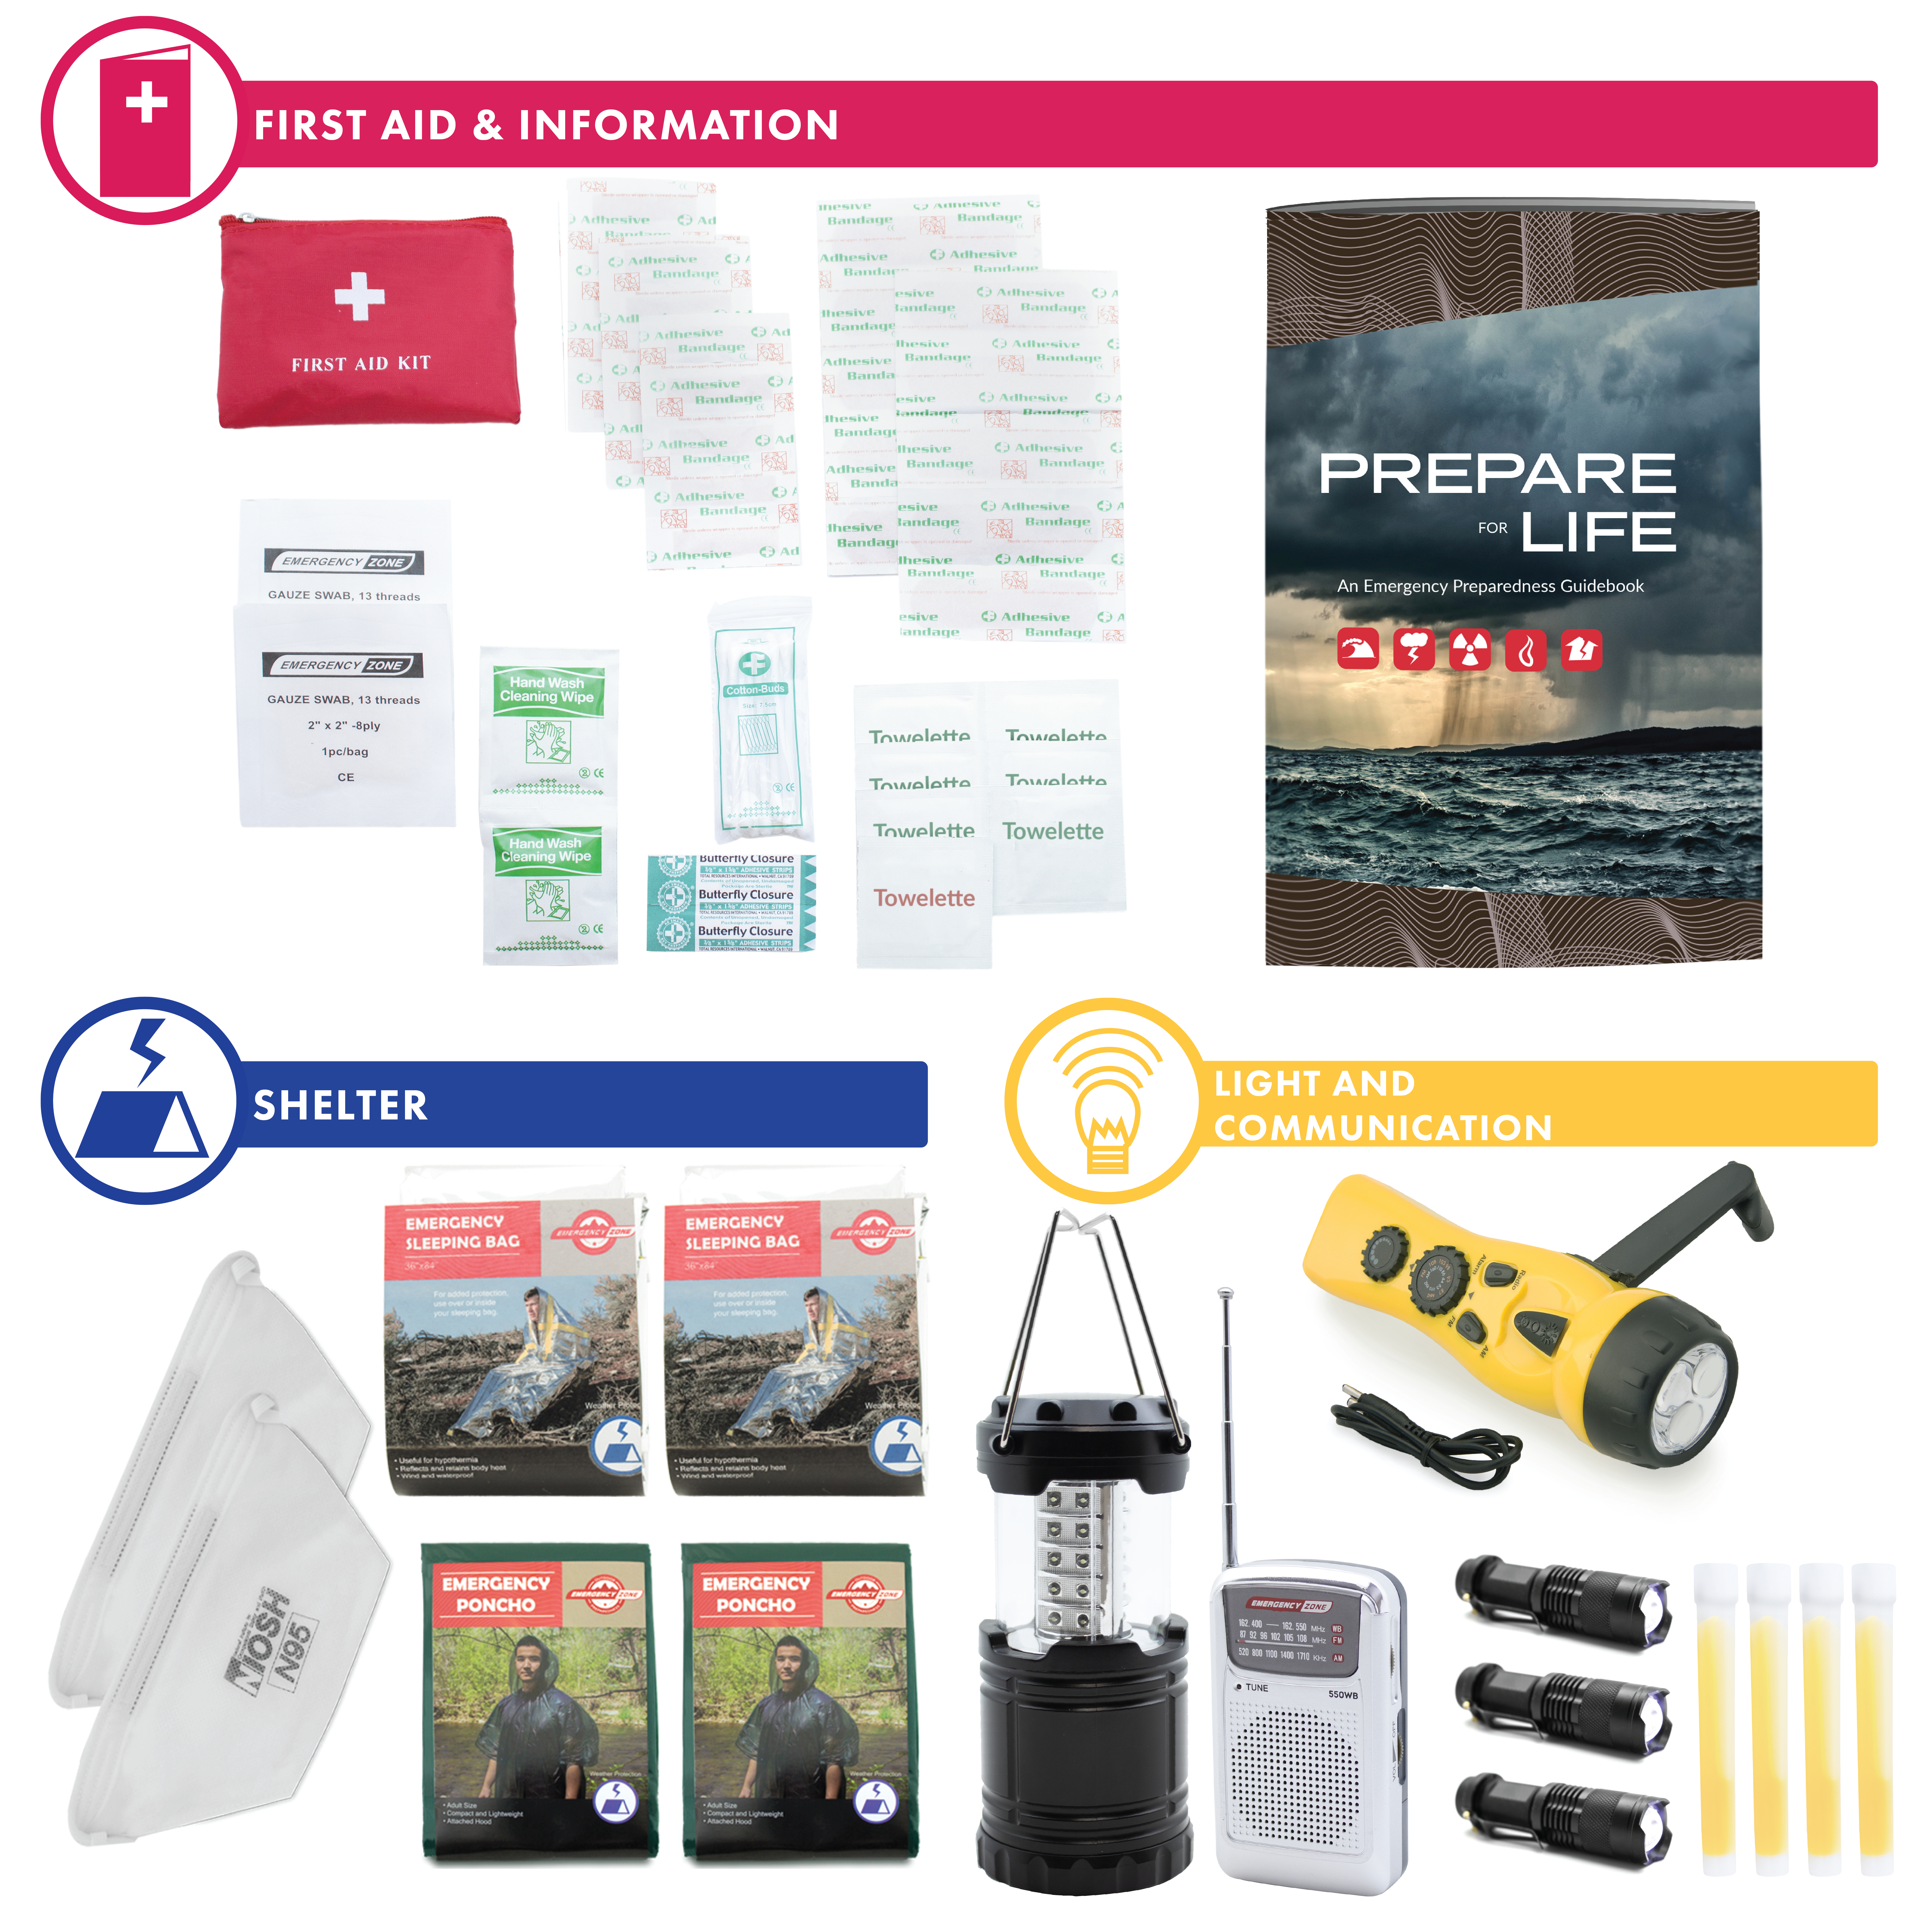 First Aid - Shelter - Light and Communication